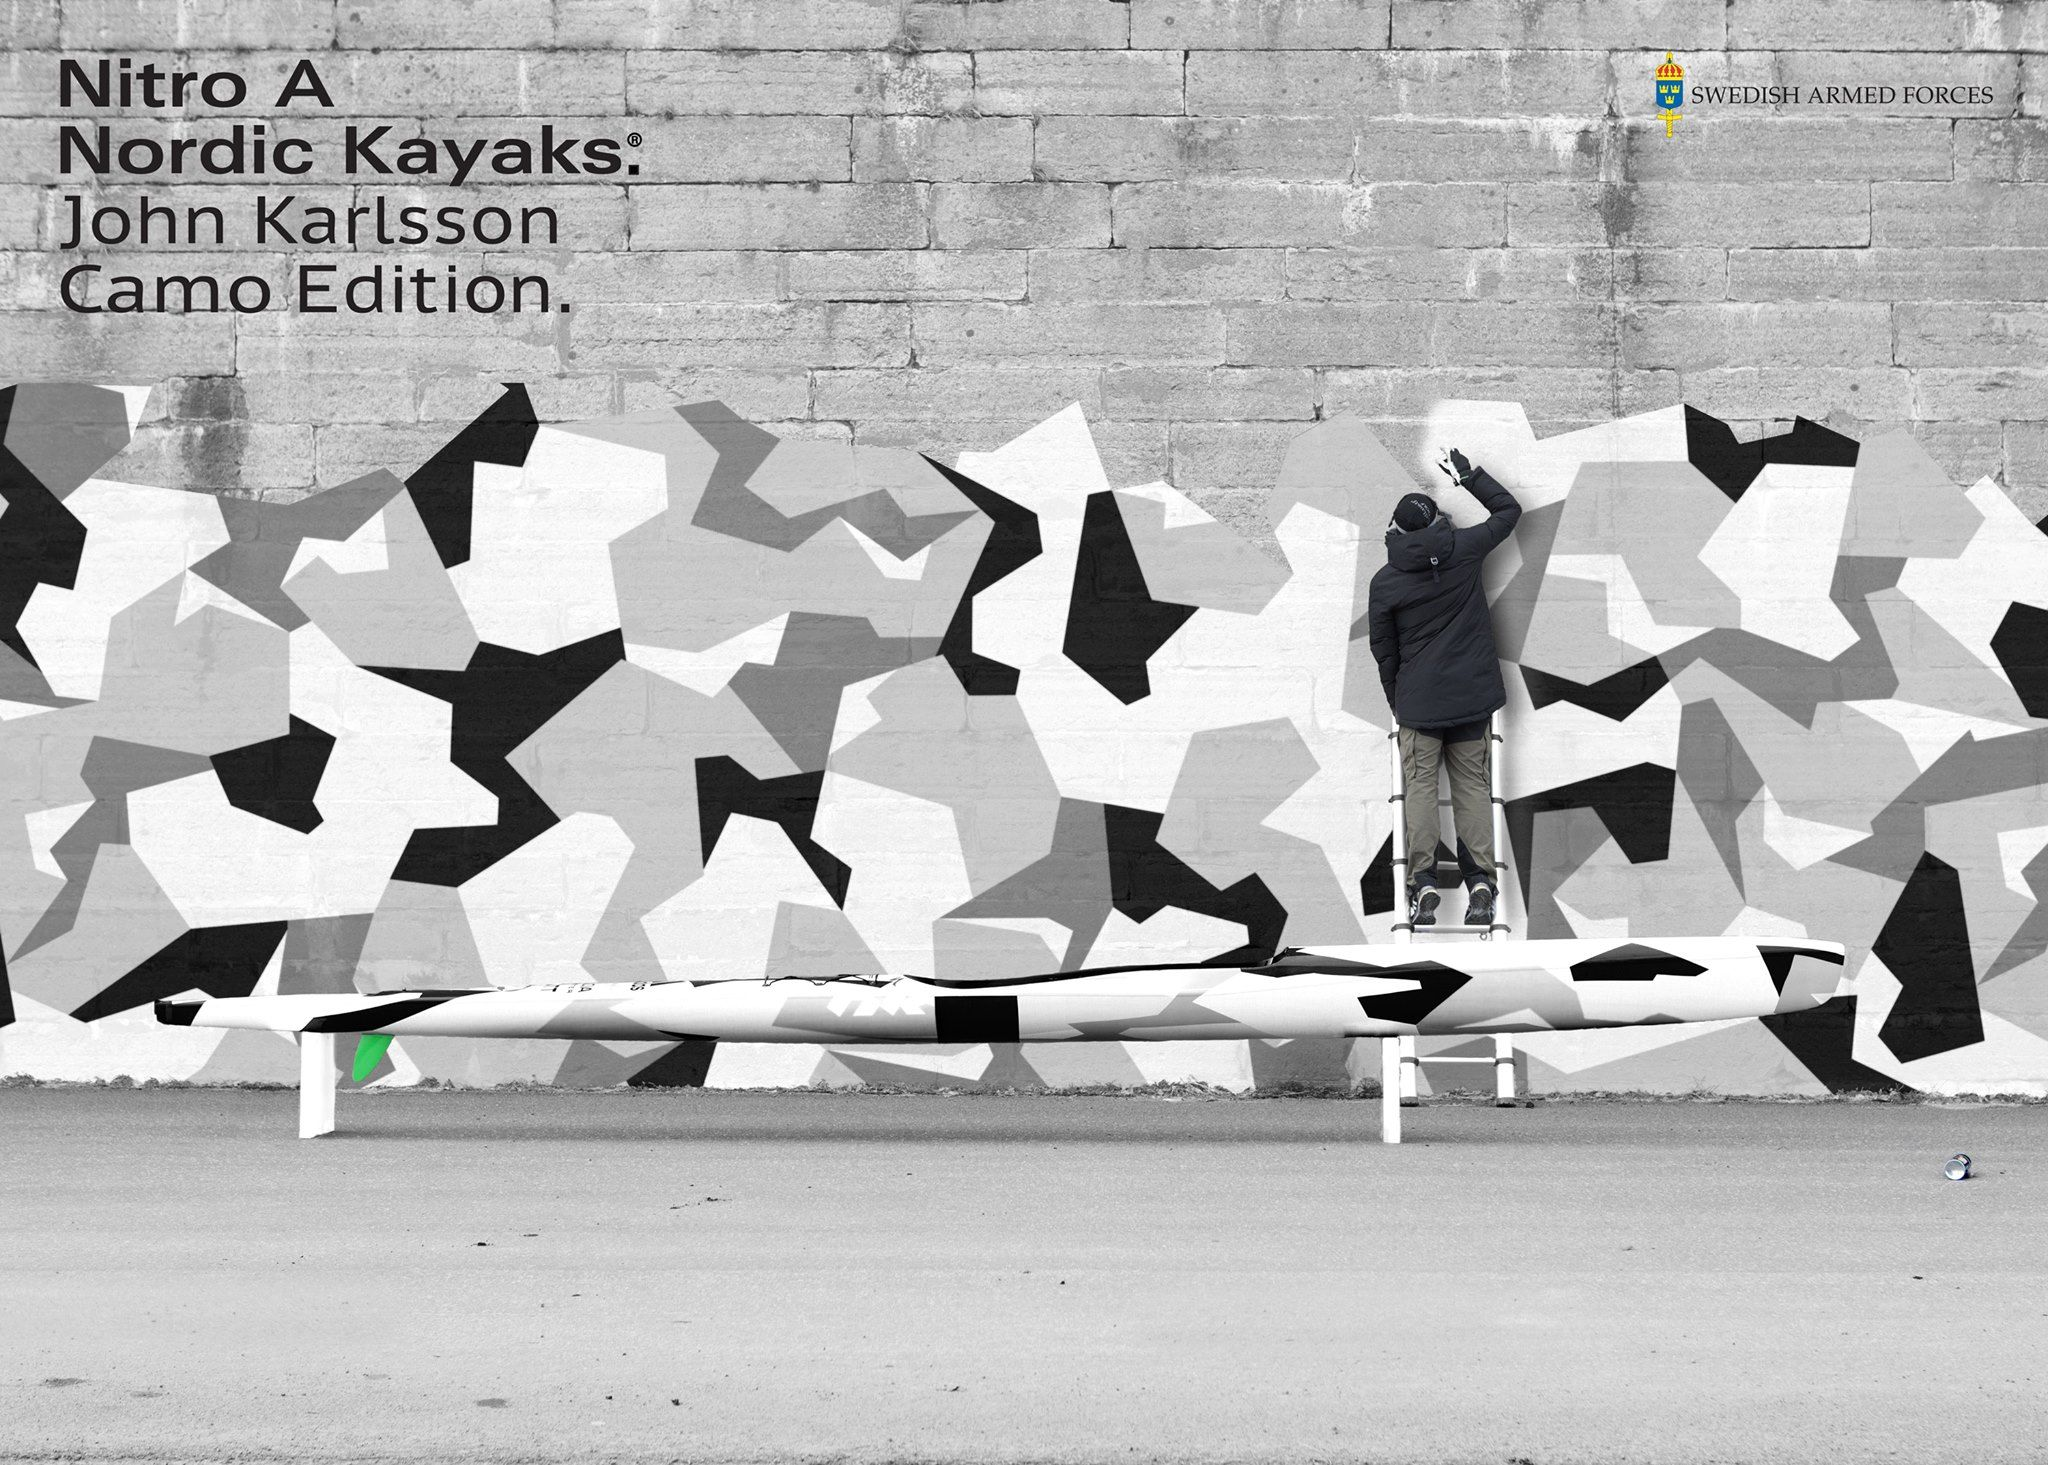 How to create a repeating camo pattern in illustrator camo kayak m90 camo editiong 20481465 amipublicfo Choice Image